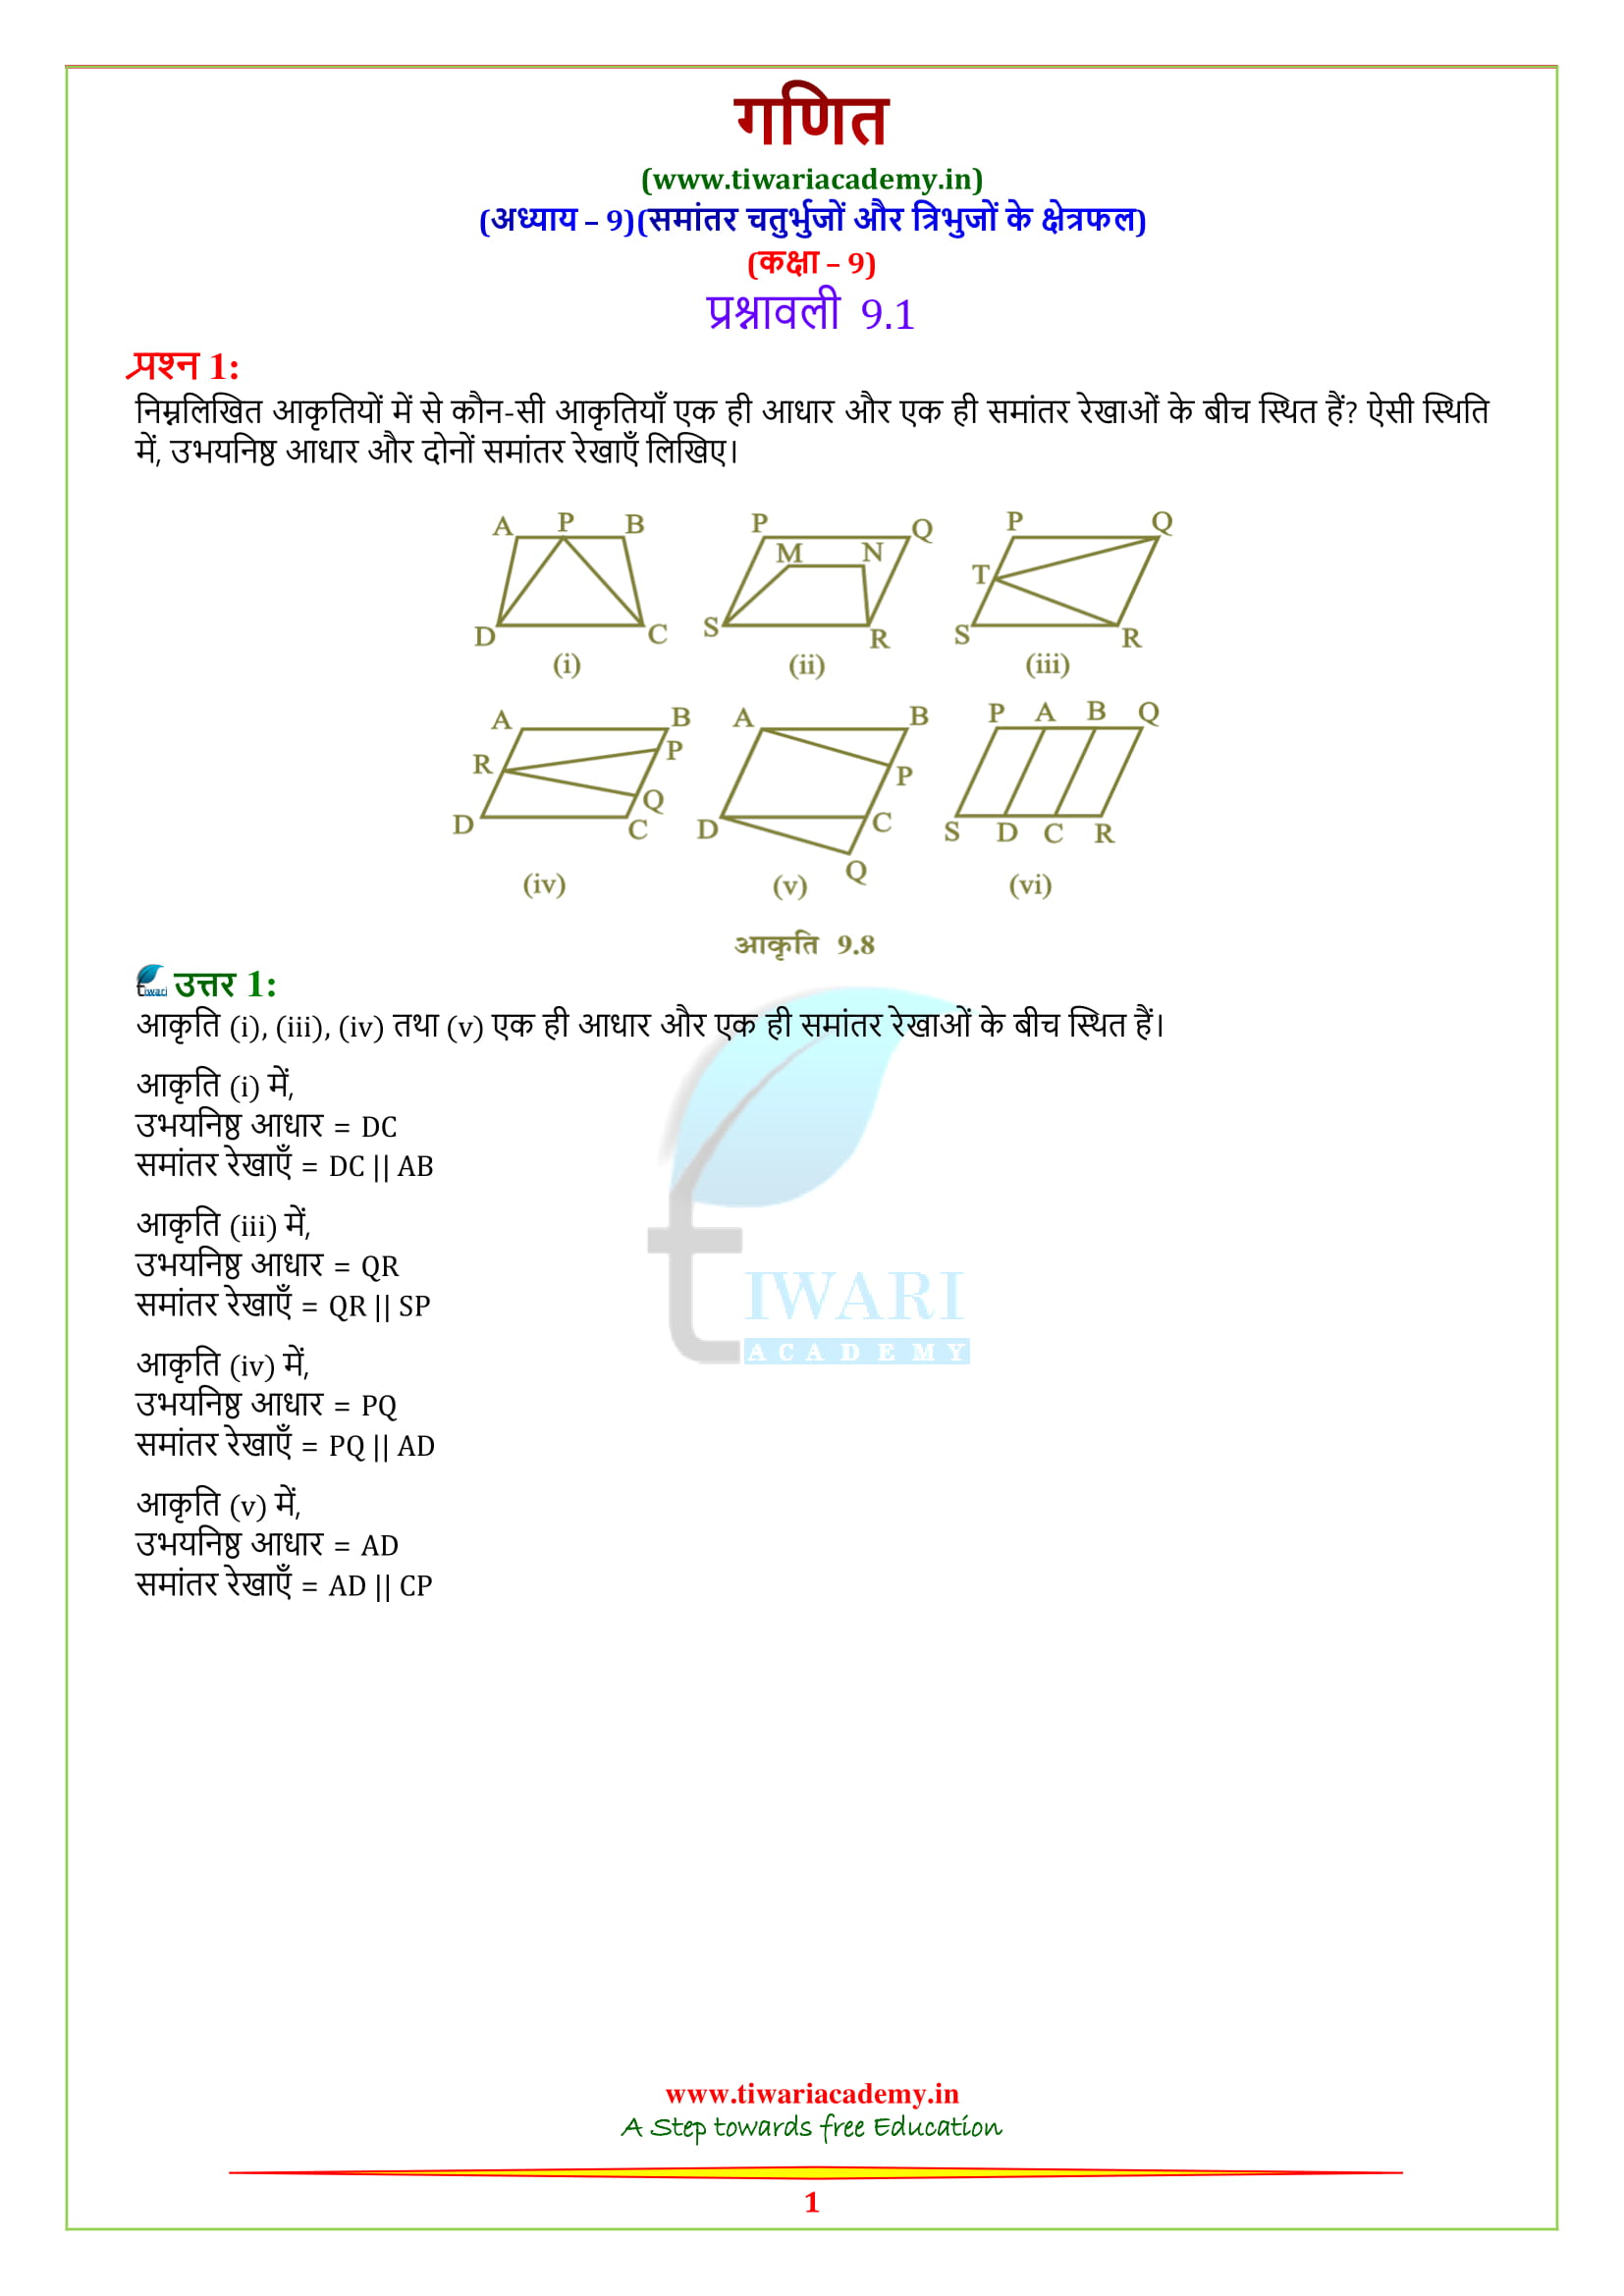 9 Maths exercise 9.1 solutions in hindi